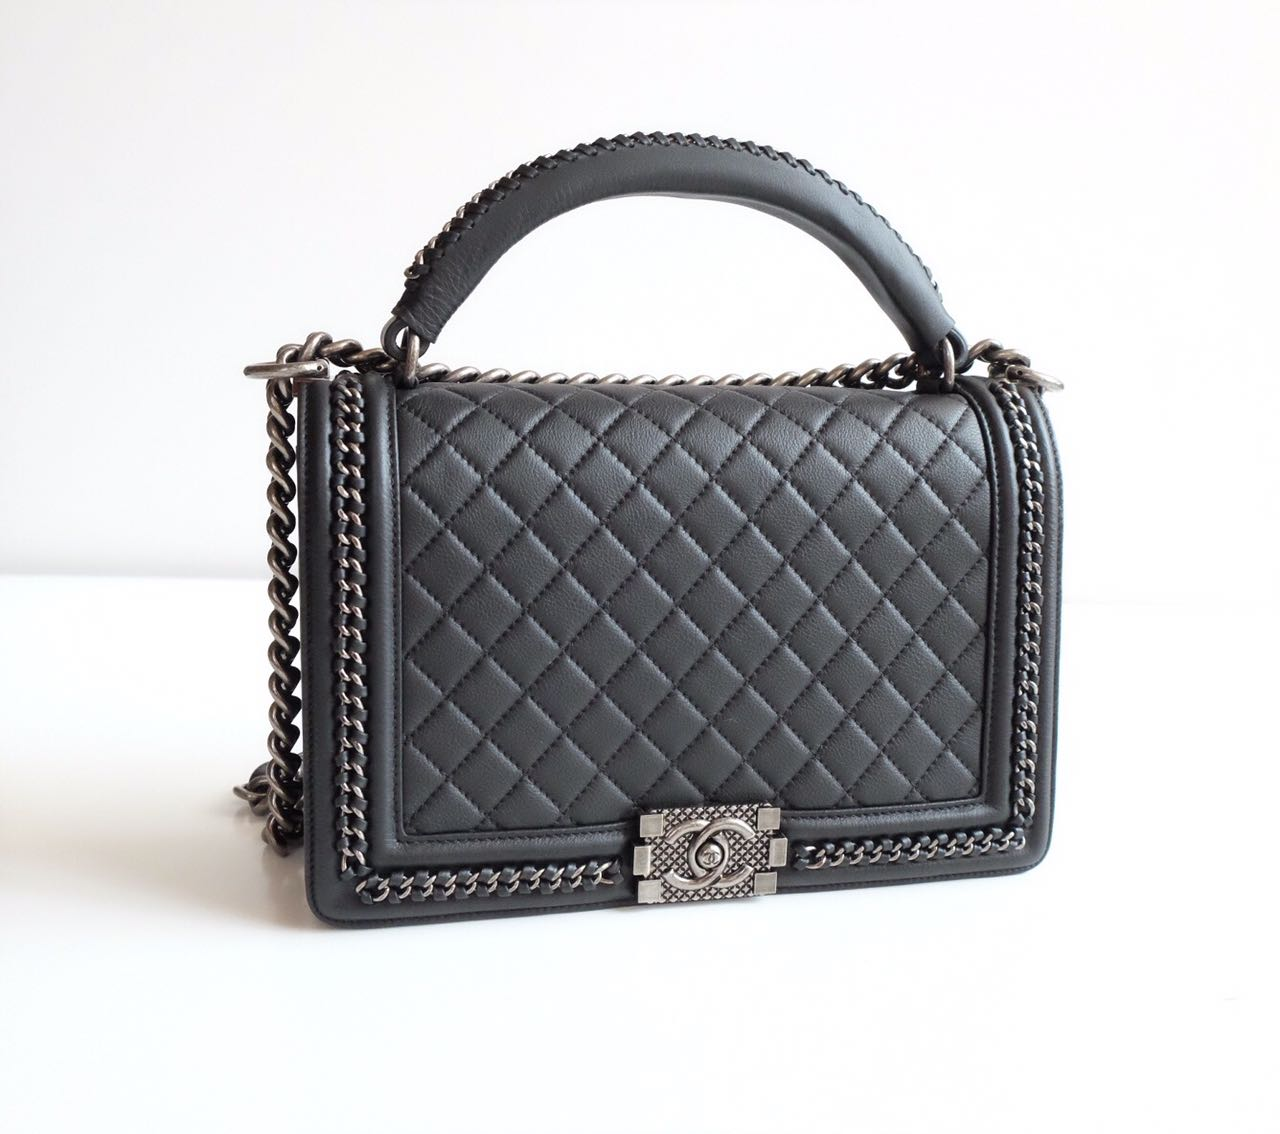 Code  Chanel Boy Medium 25Cm Quilted with Handle Calfskin Silver Vintage HW  Chain Mirror Original Leather Bag 28f8f2ed3d